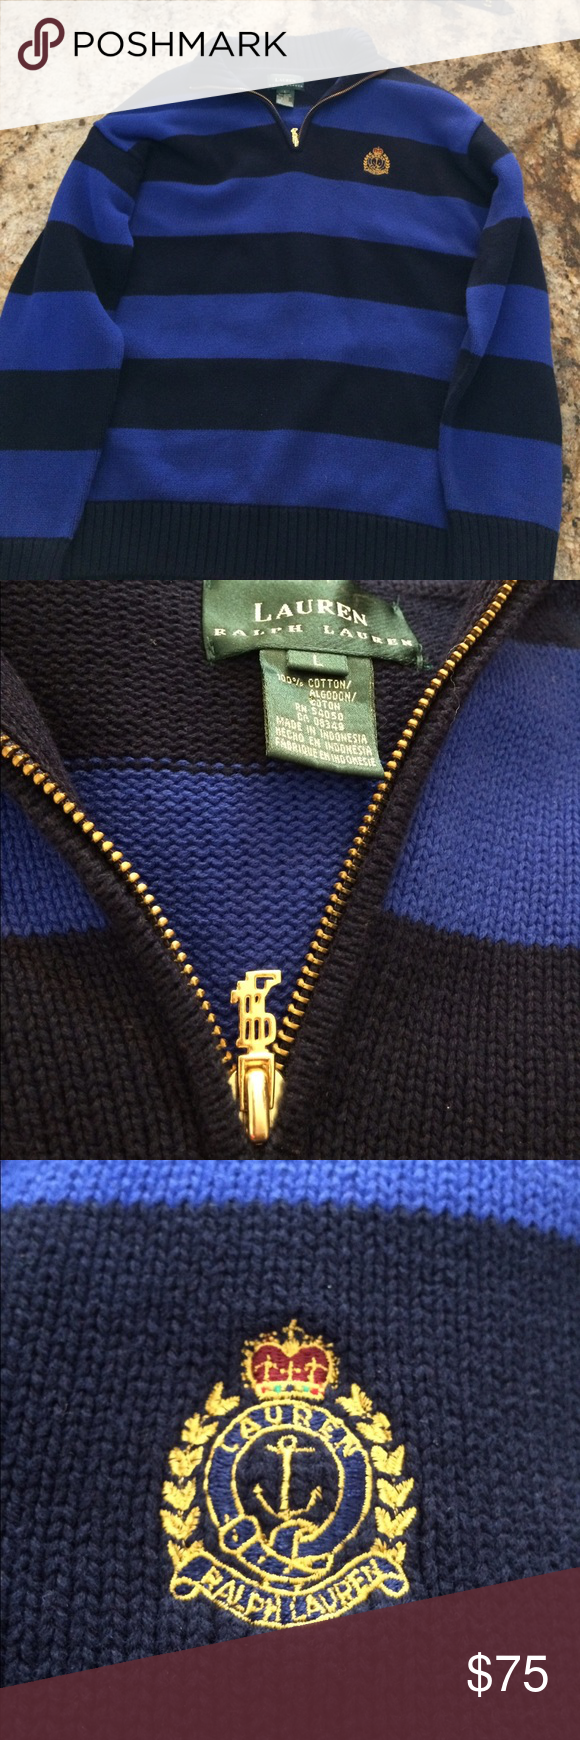 Ralph Lauren Quarter zipped collared sweater Great condition. Price negotiable Polo by Ralph Lauren Sweaters Zip Up